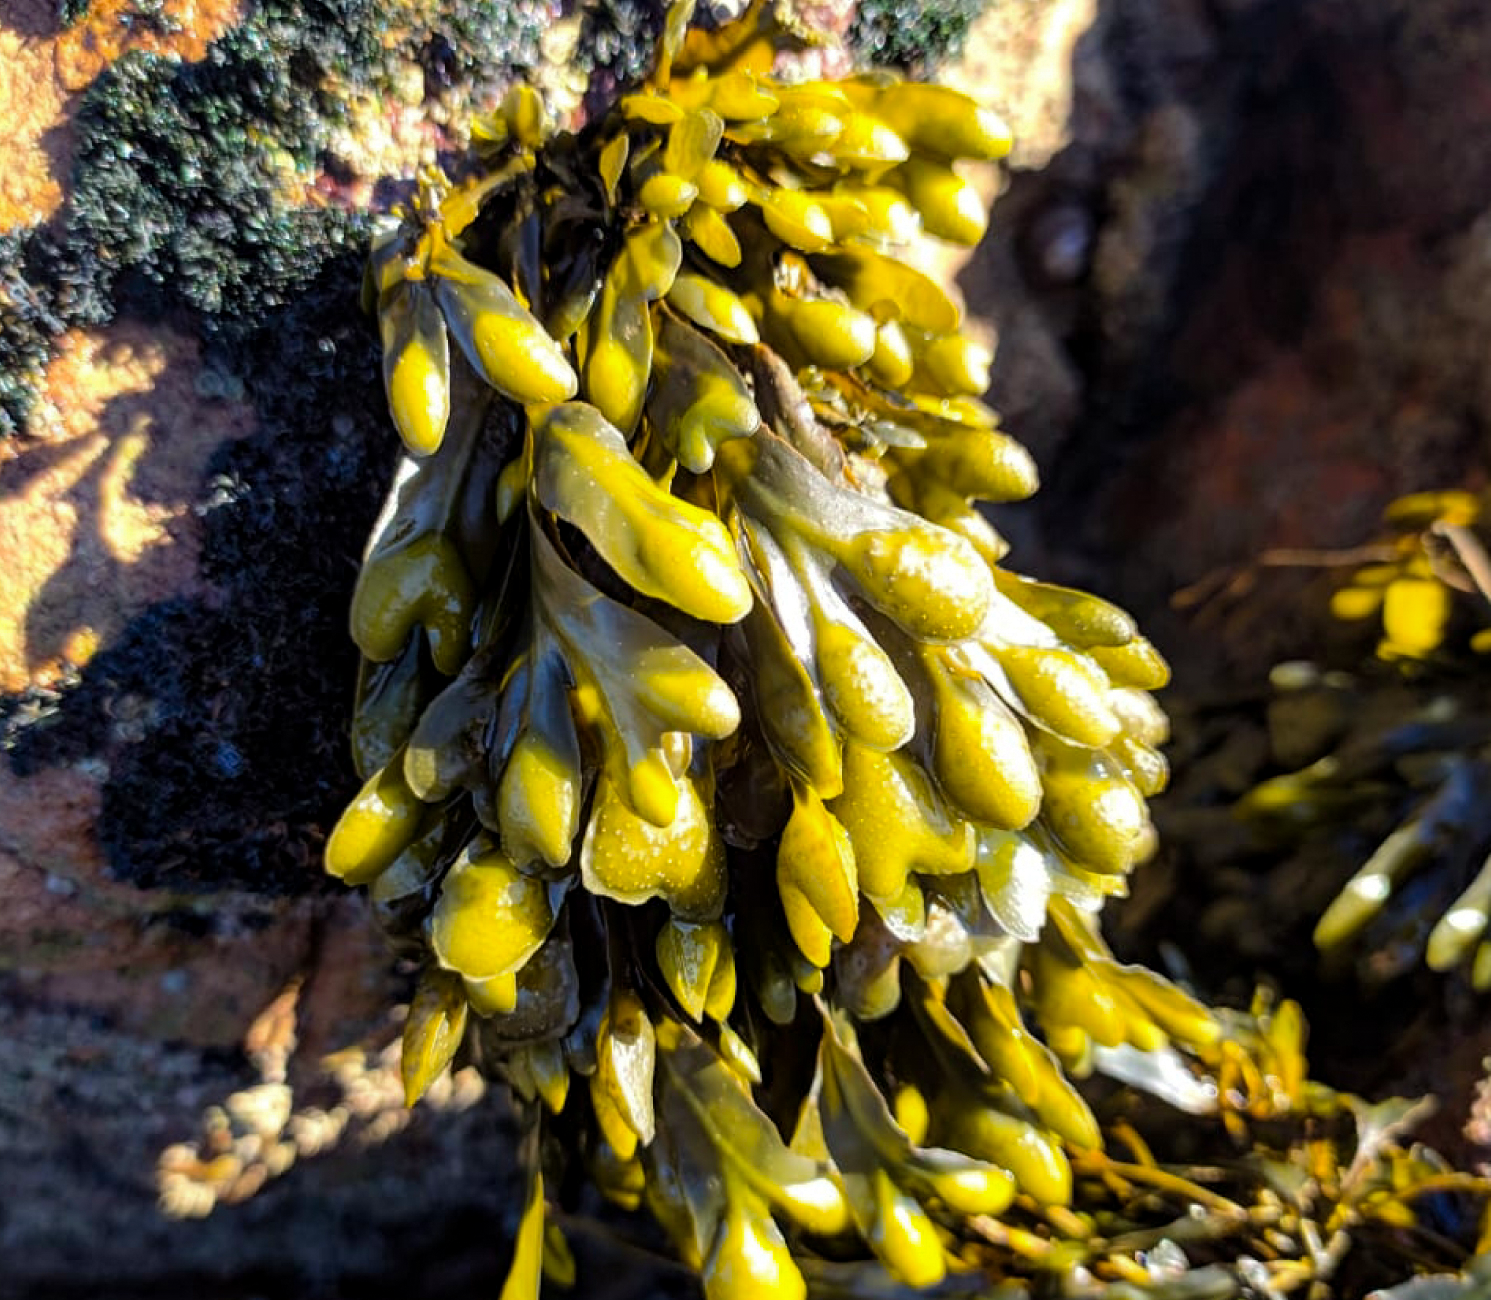 Bladderwrack: Benefits, Uses, and Side Effects